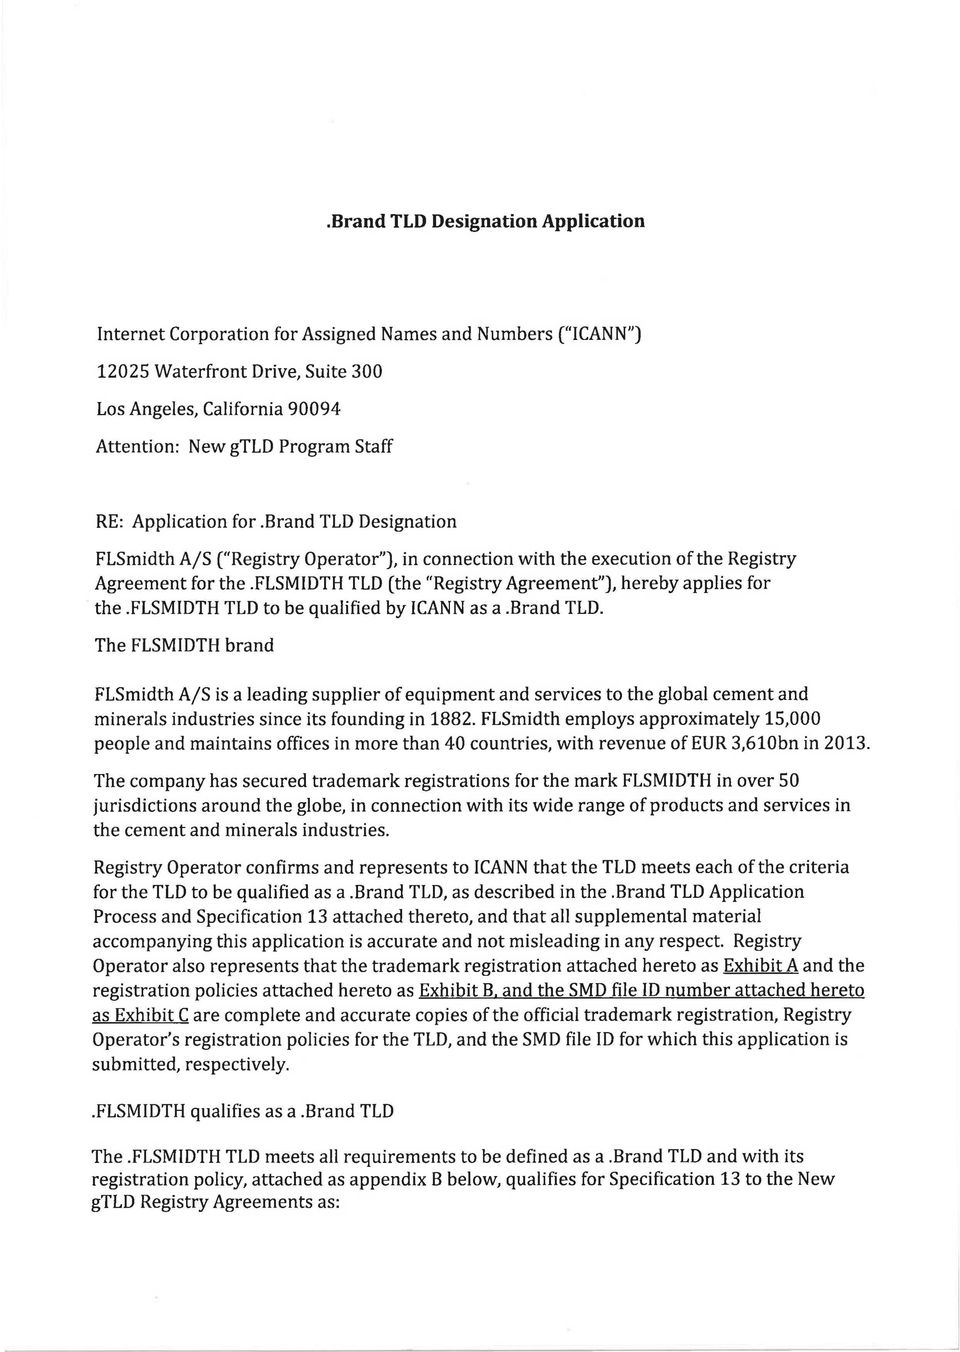 "flsmidth TLD (the ""Registry Agreement""), hereby applies for the.flsmidth TLD to be qualified by I CANN as a.brand TLD."